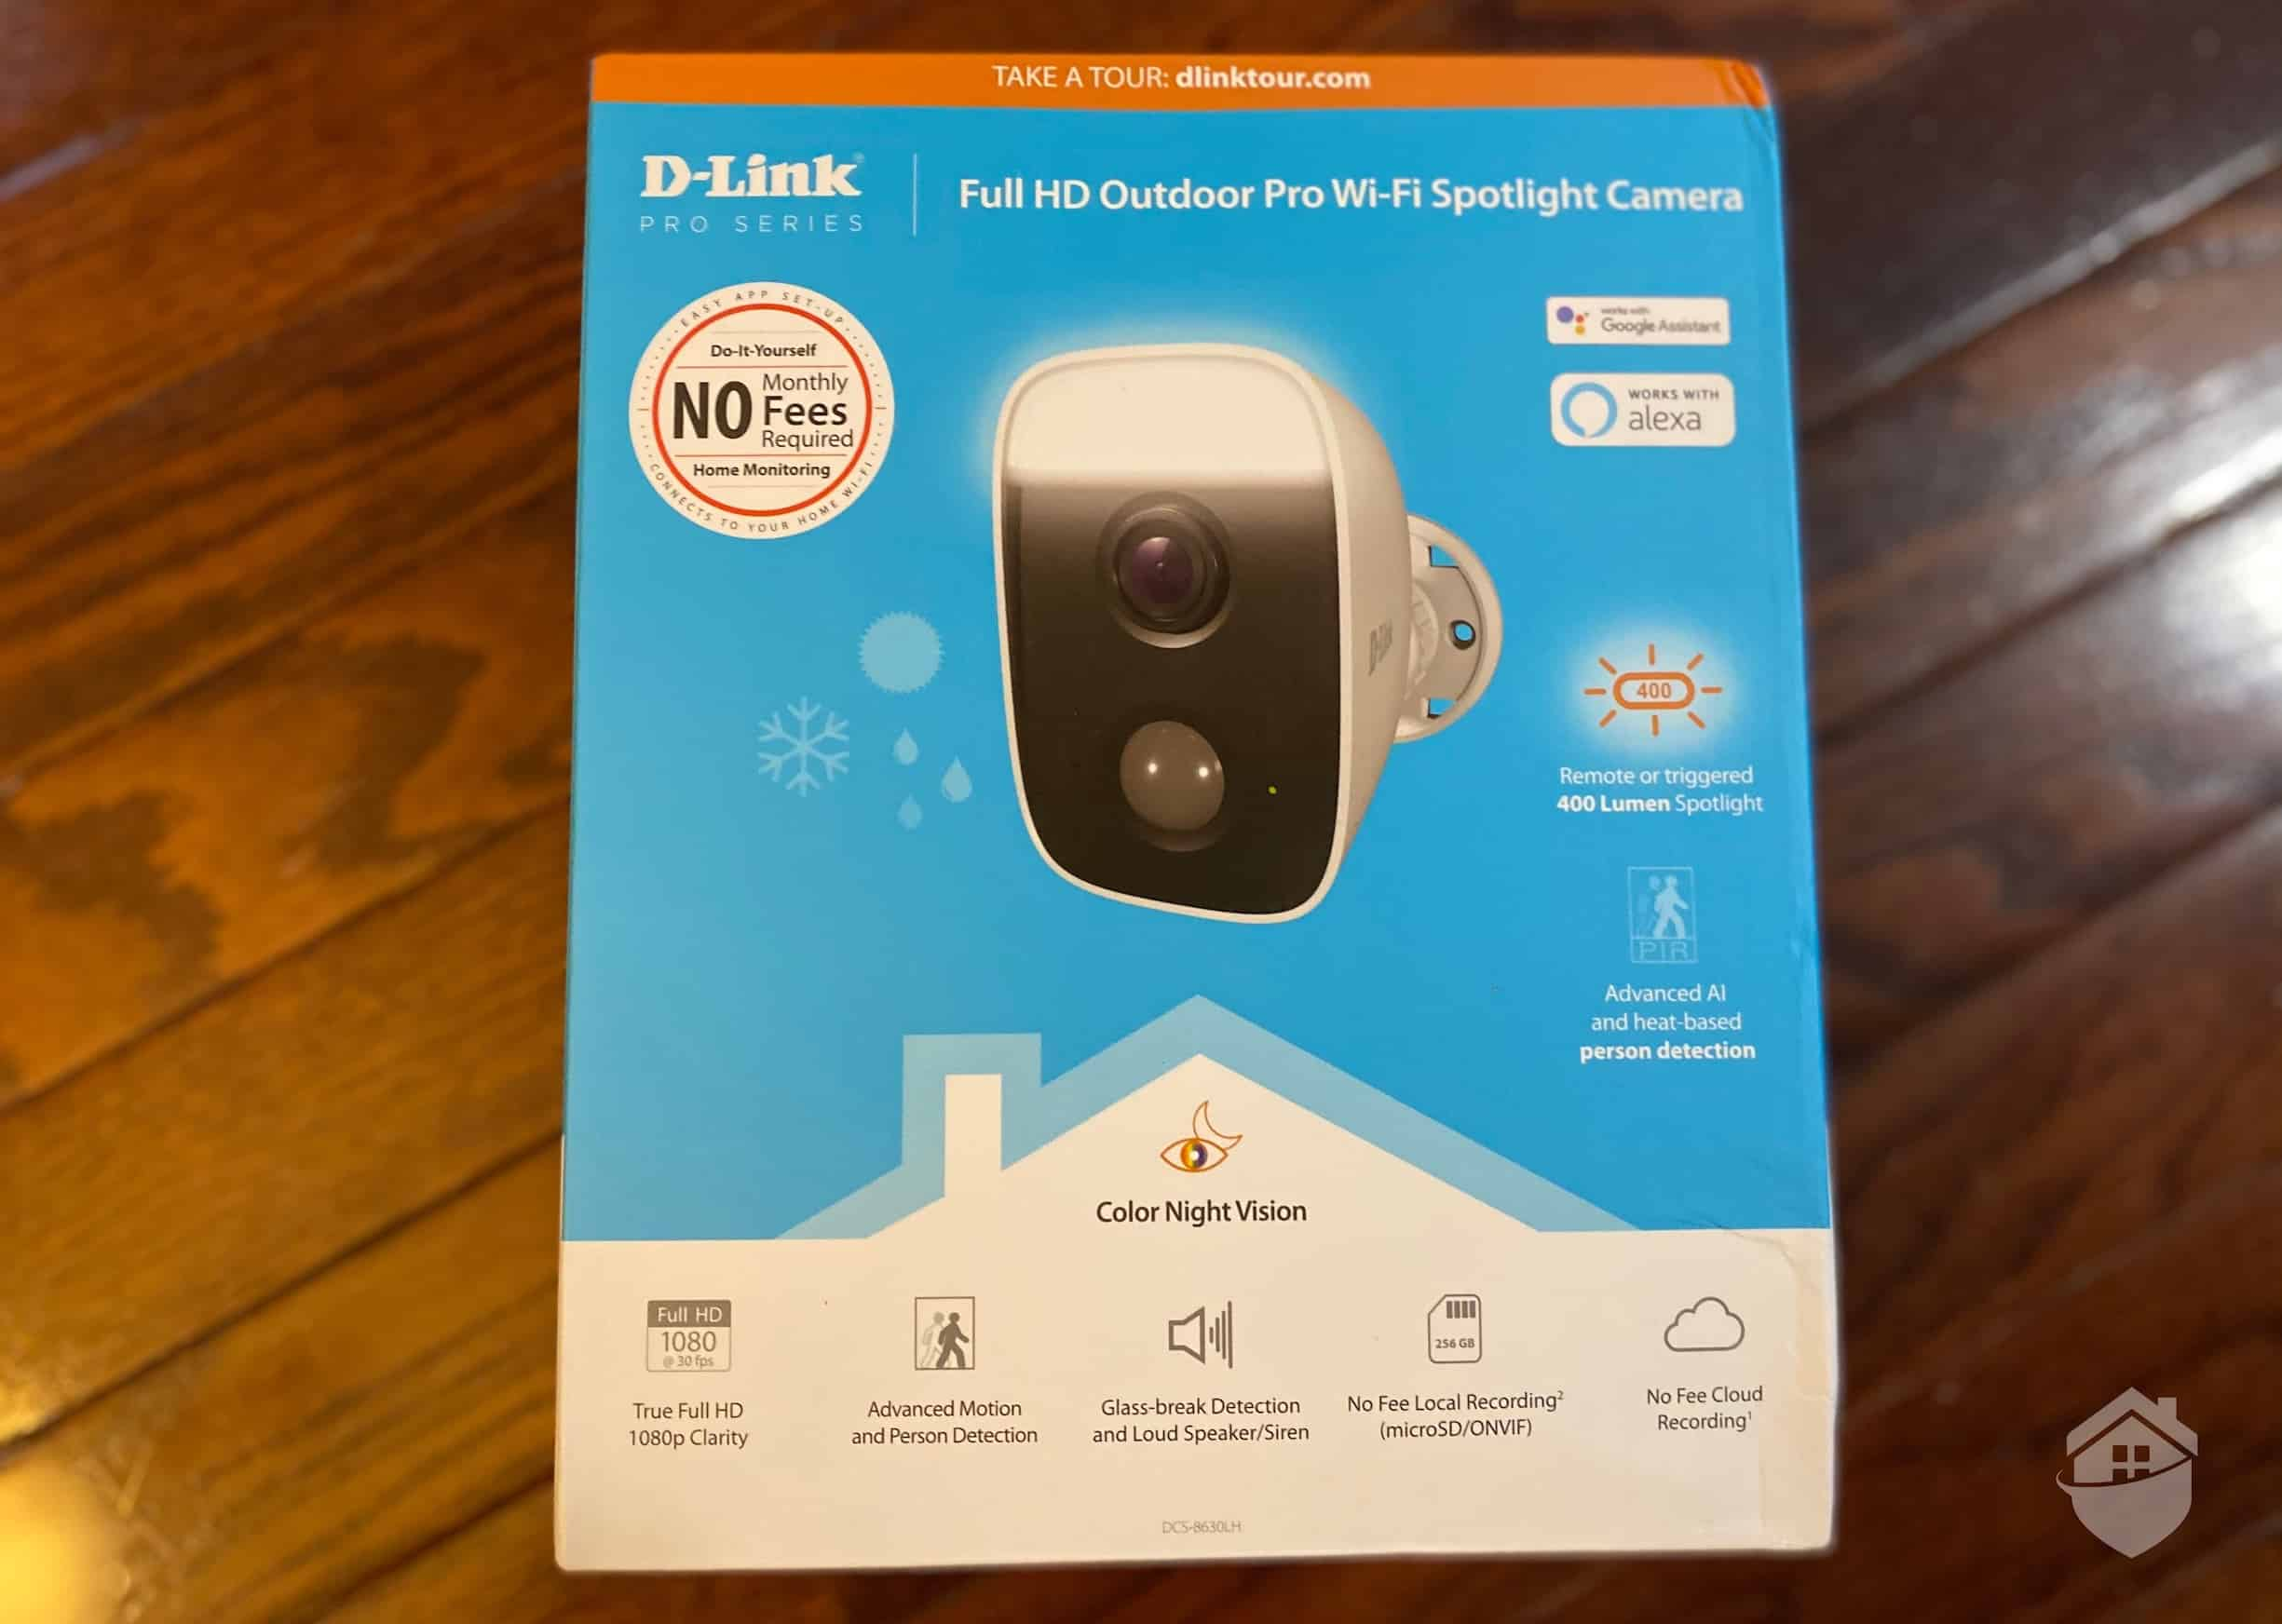 D-Link Packaging